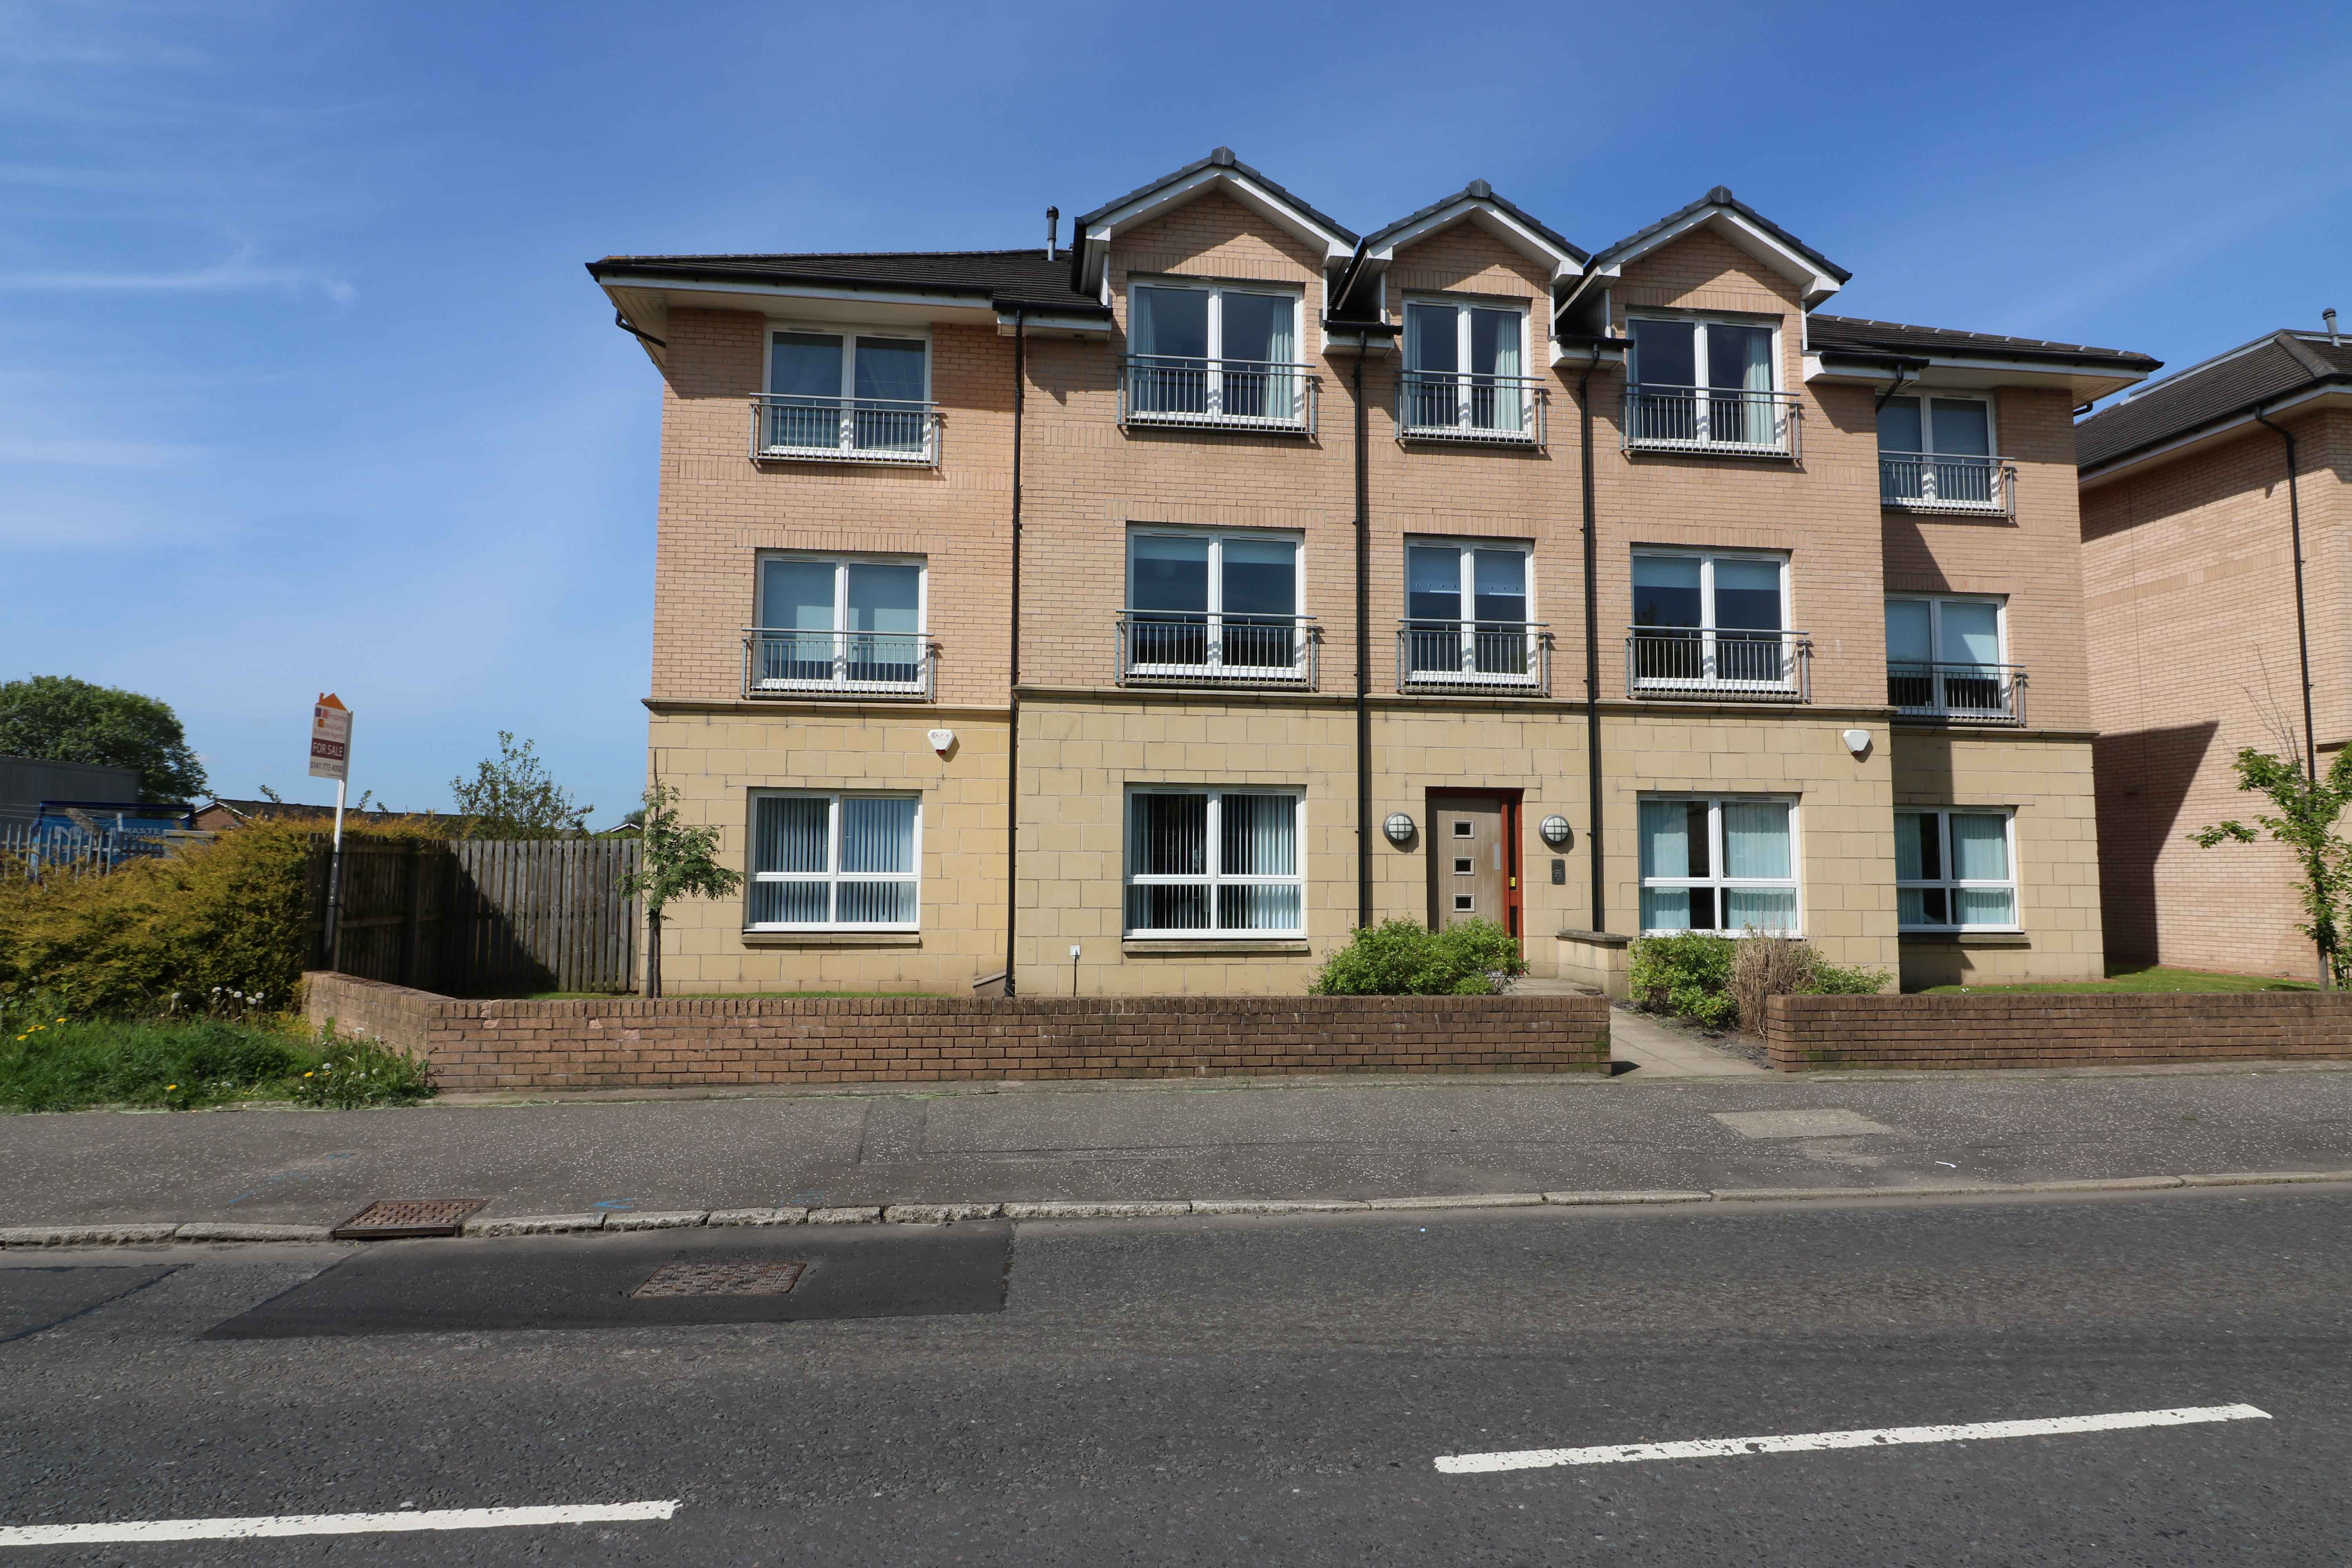 2 Bedroom Second Floor Flat – Carmyle Avenue, Mount Vernon